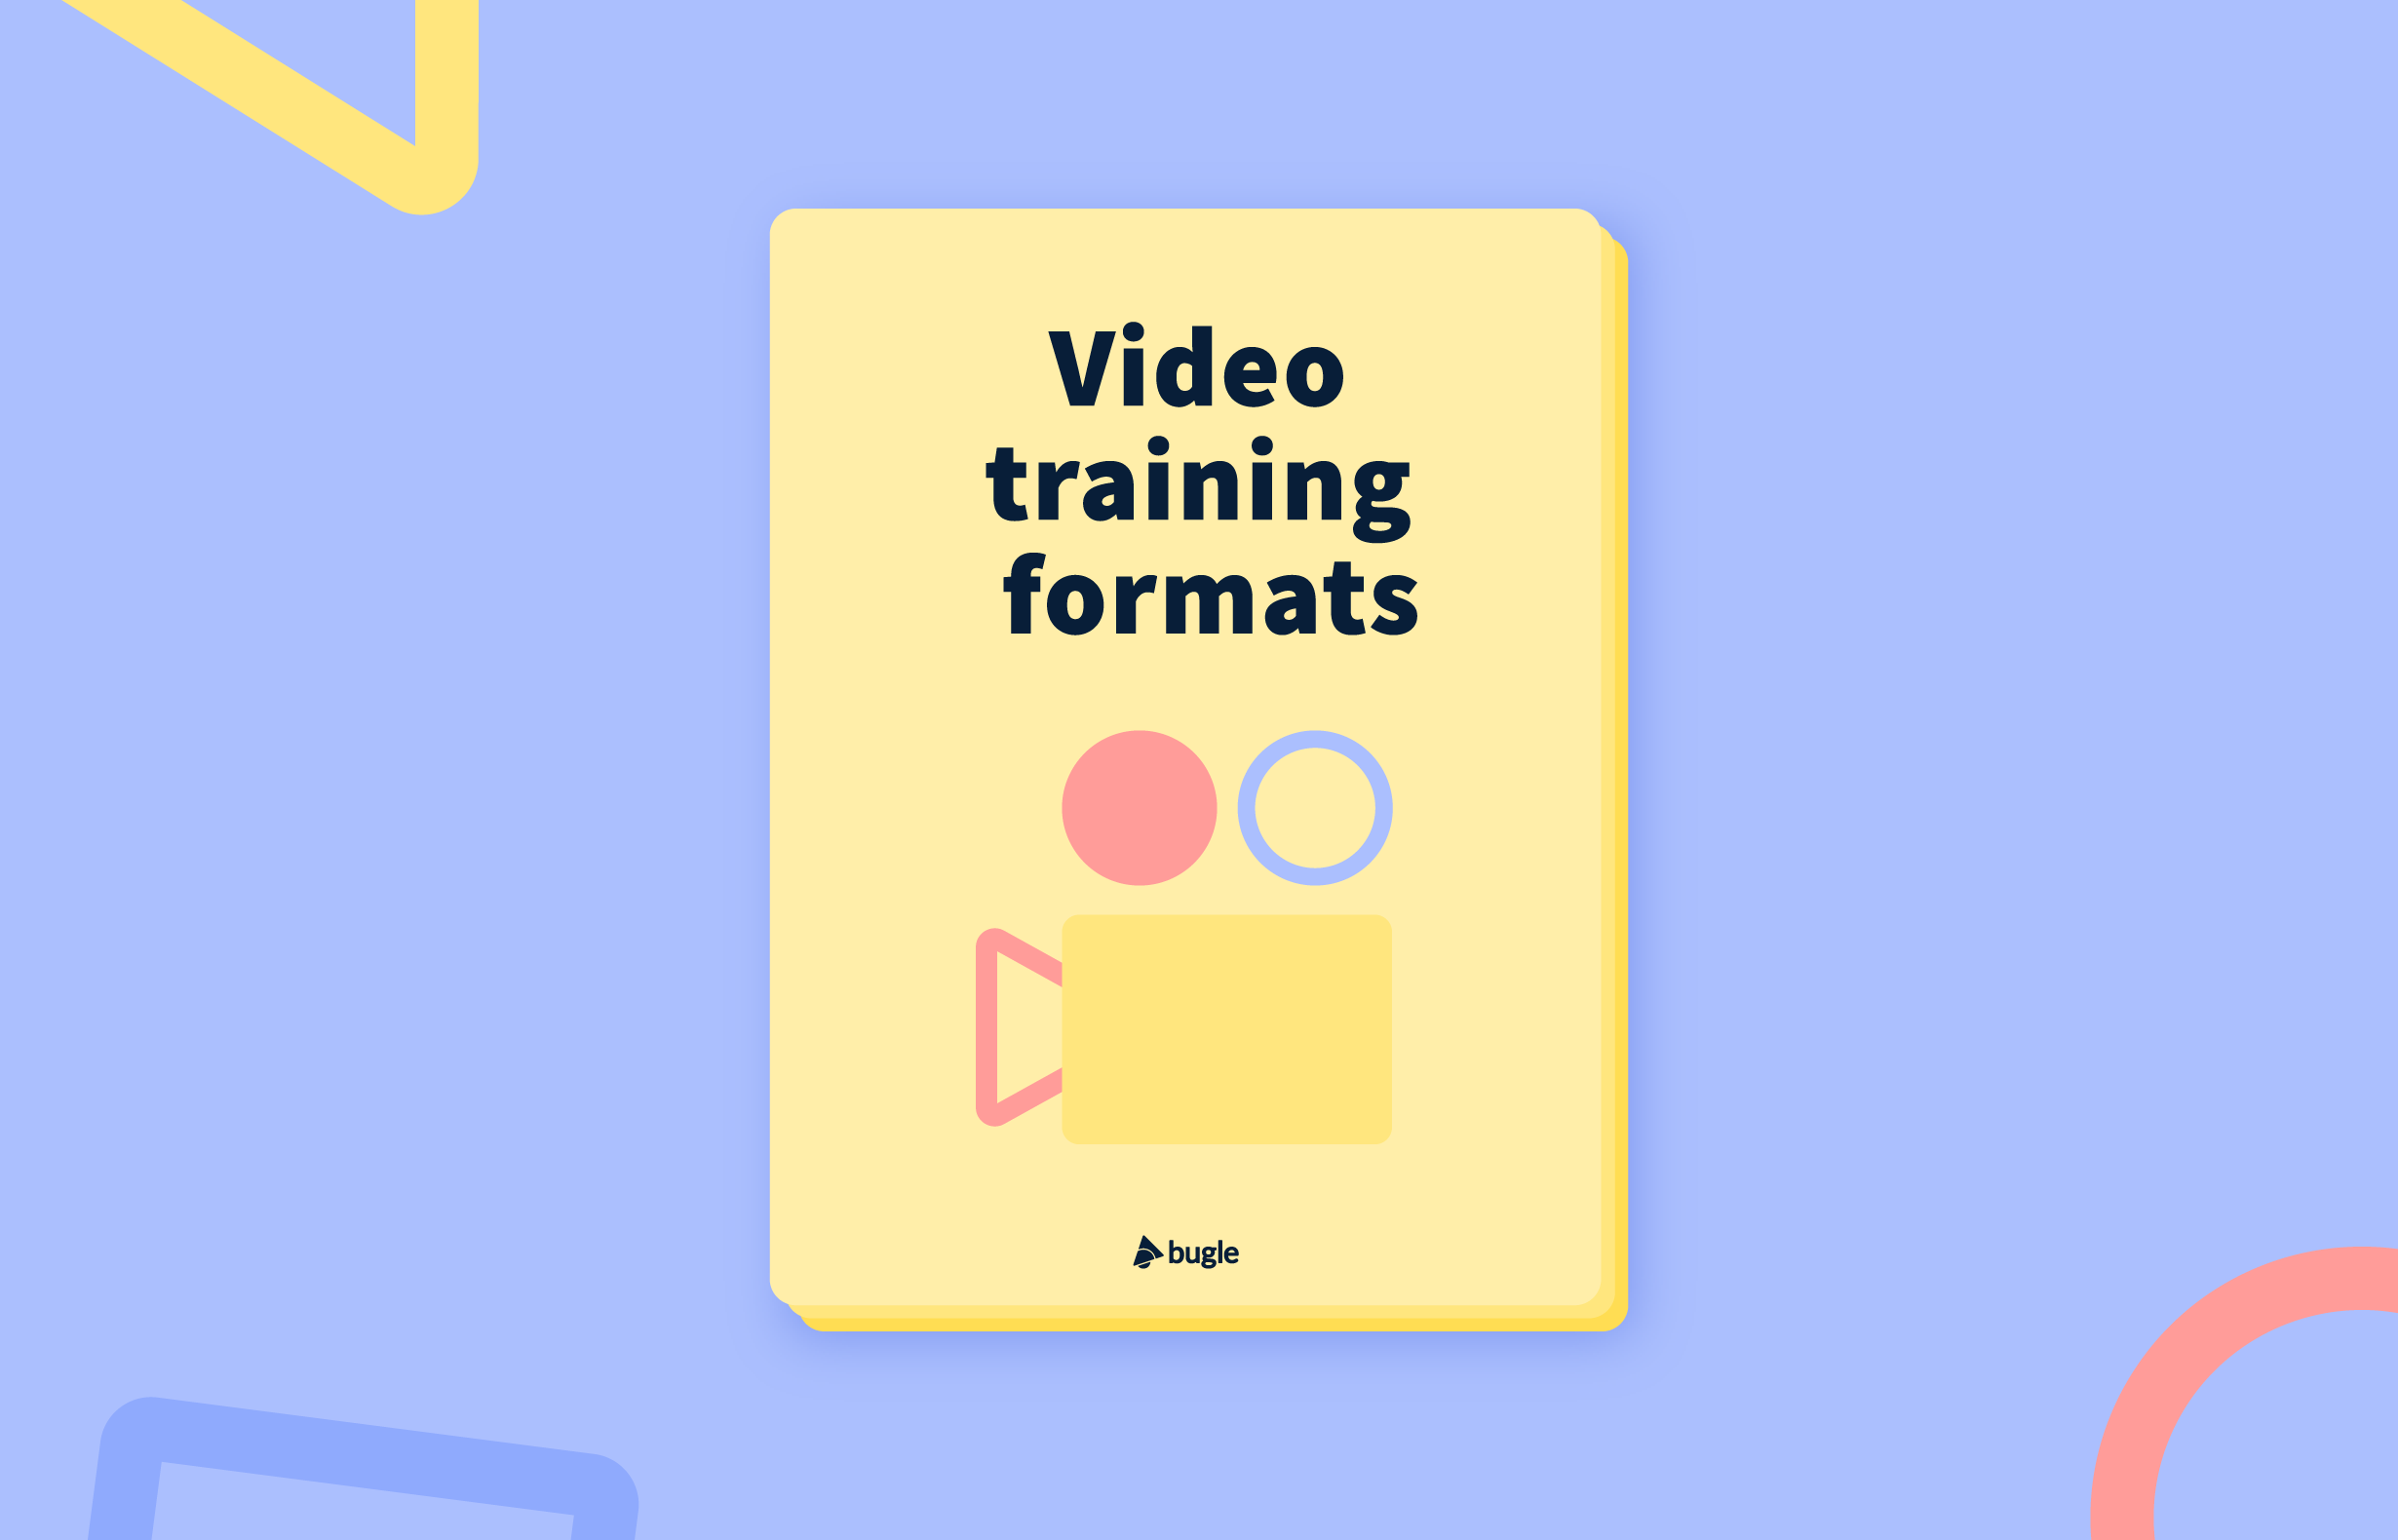 Video training formats poster and video